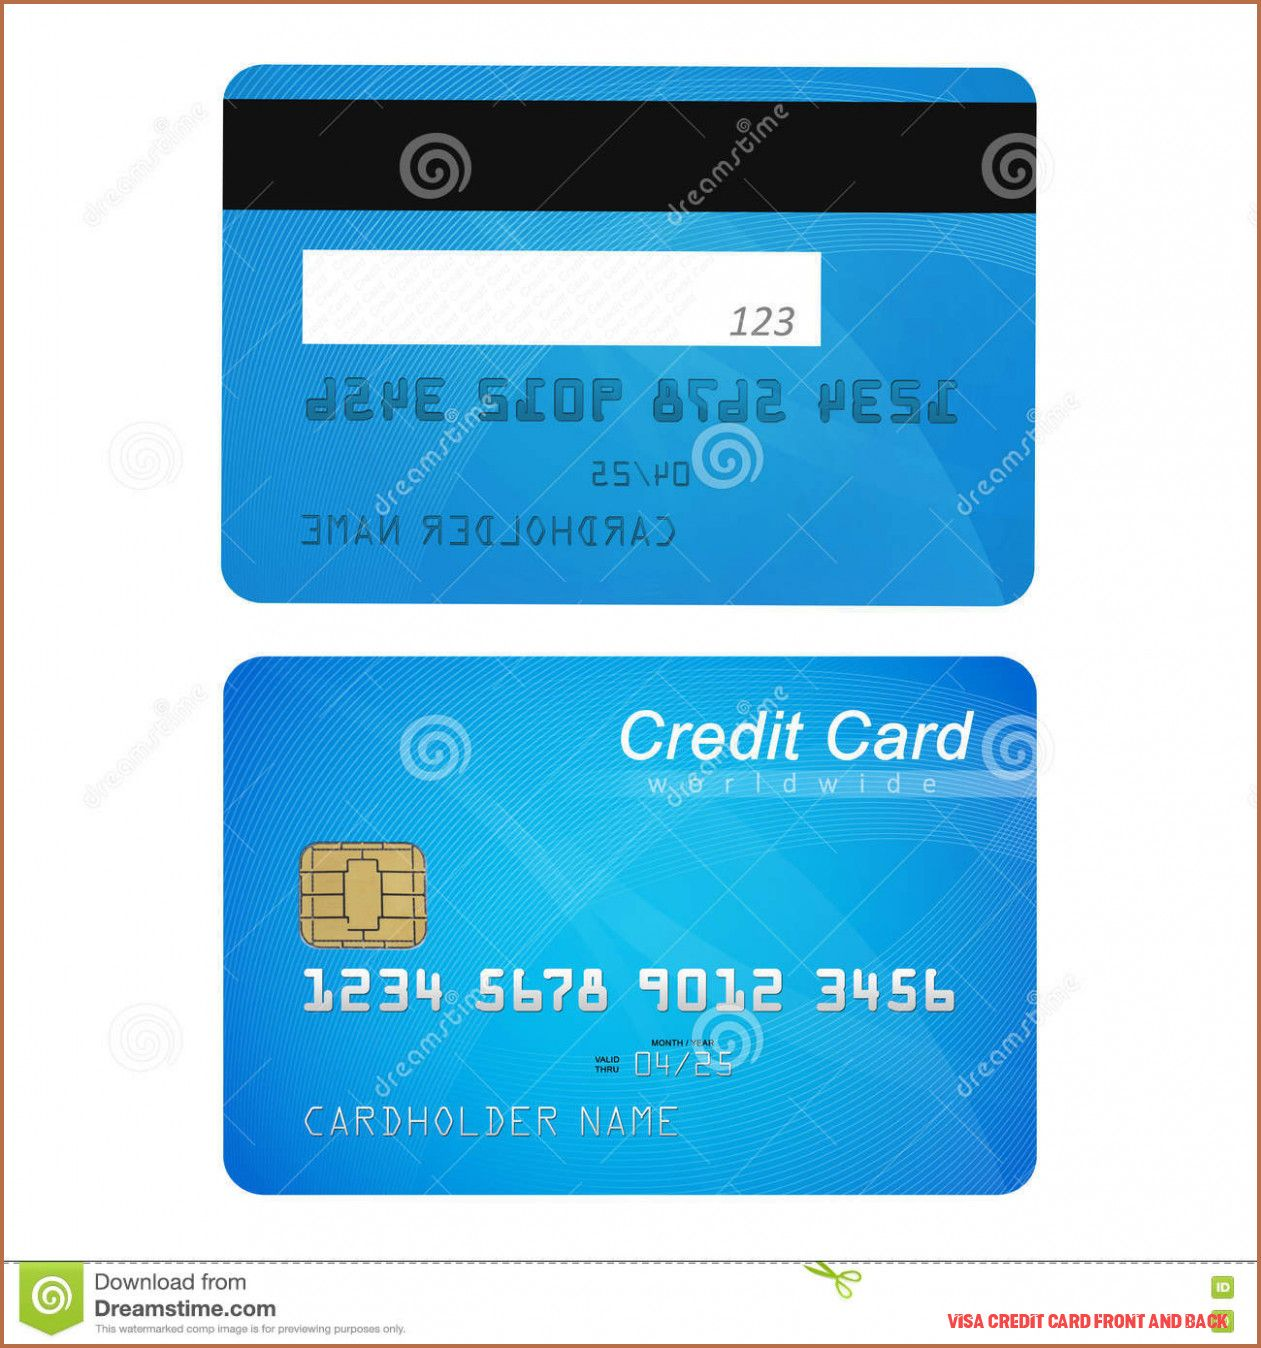 Why You Must Experience Visa Credit Card Front And Back At Least Once In Your Lifetime Visa Credit Card Front And Ba Visa Credit Card Visa Credit Credit Card